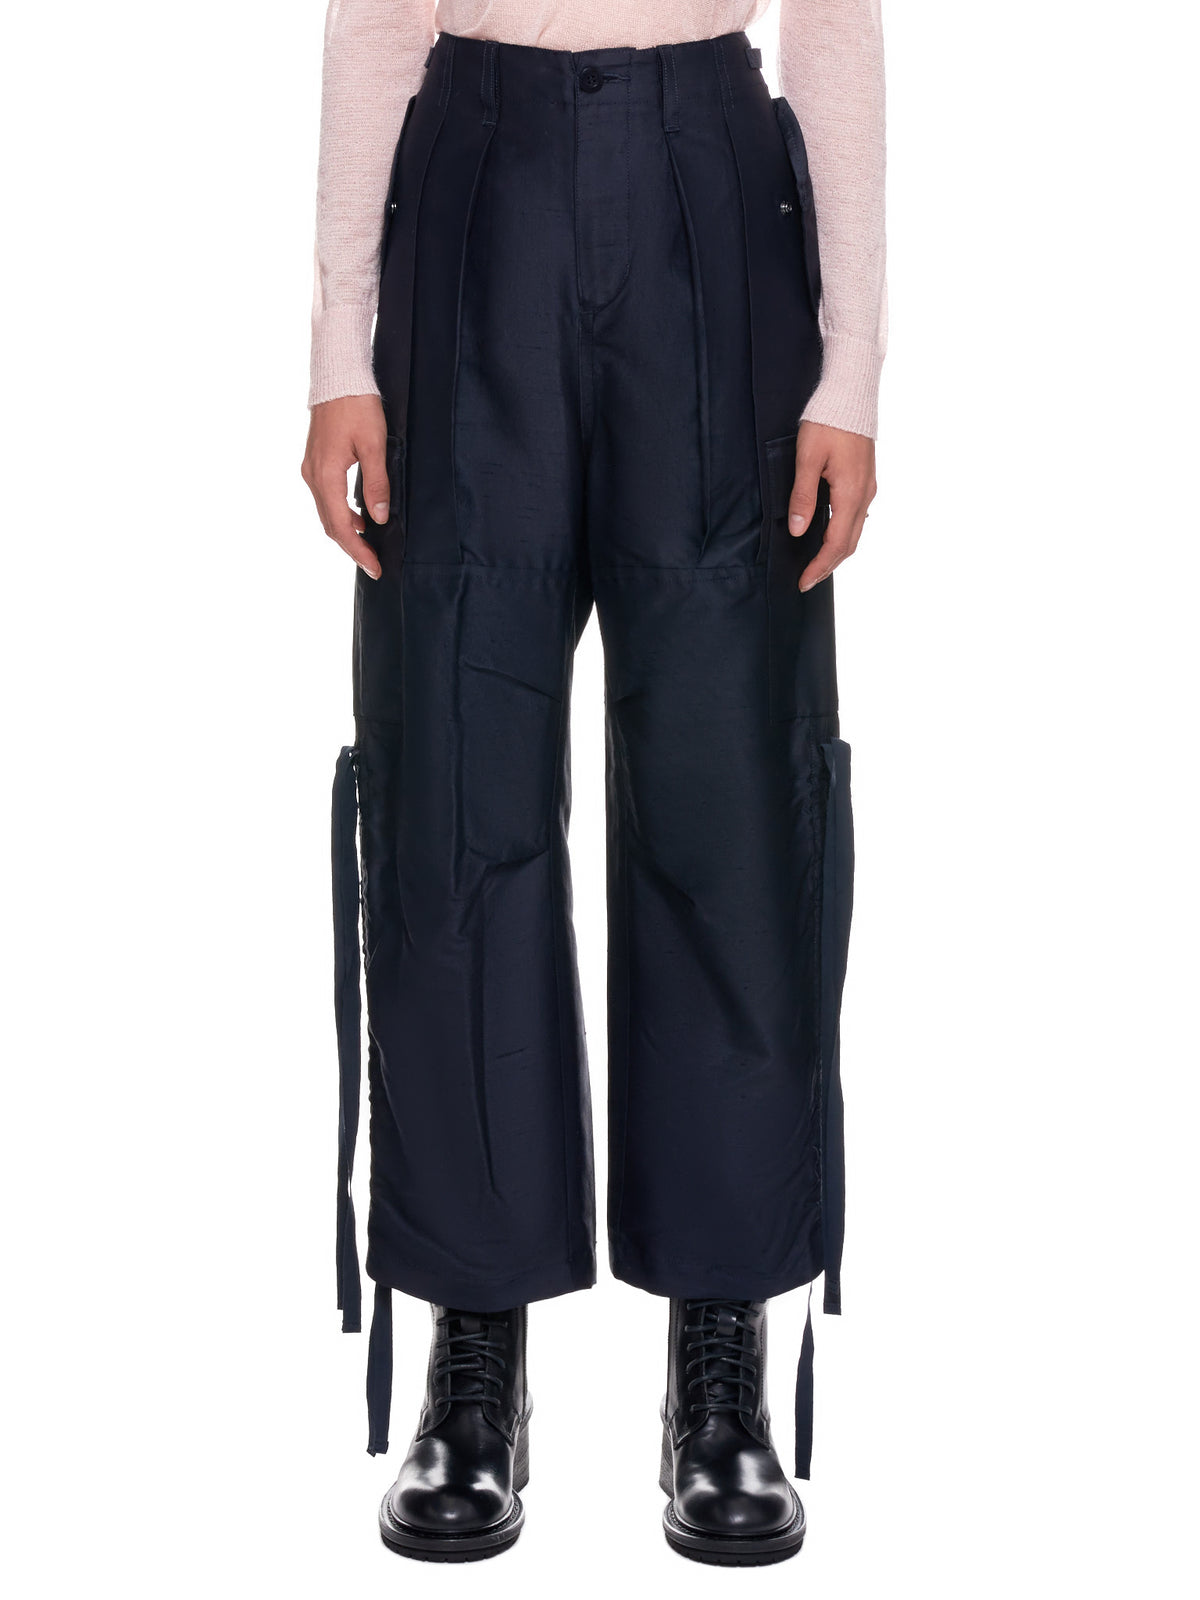 Undercover Pants - H.Lorenzo Front